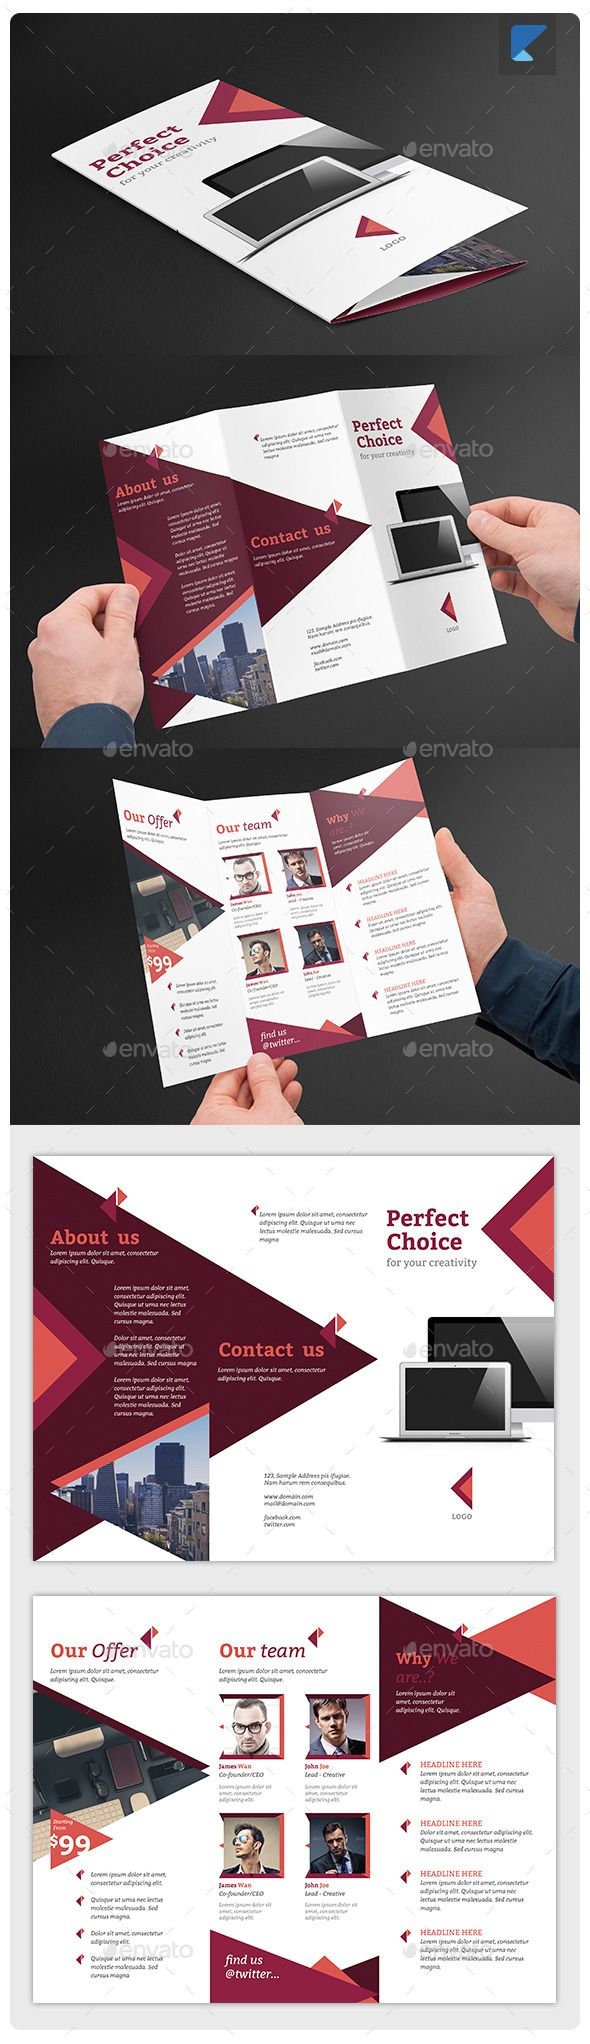 Corporate Trifold Brochure Design Template #brochure Download: http://graphicriver.net/item/corporate-trifold-brochure-v38/11654101?ref=ksioks